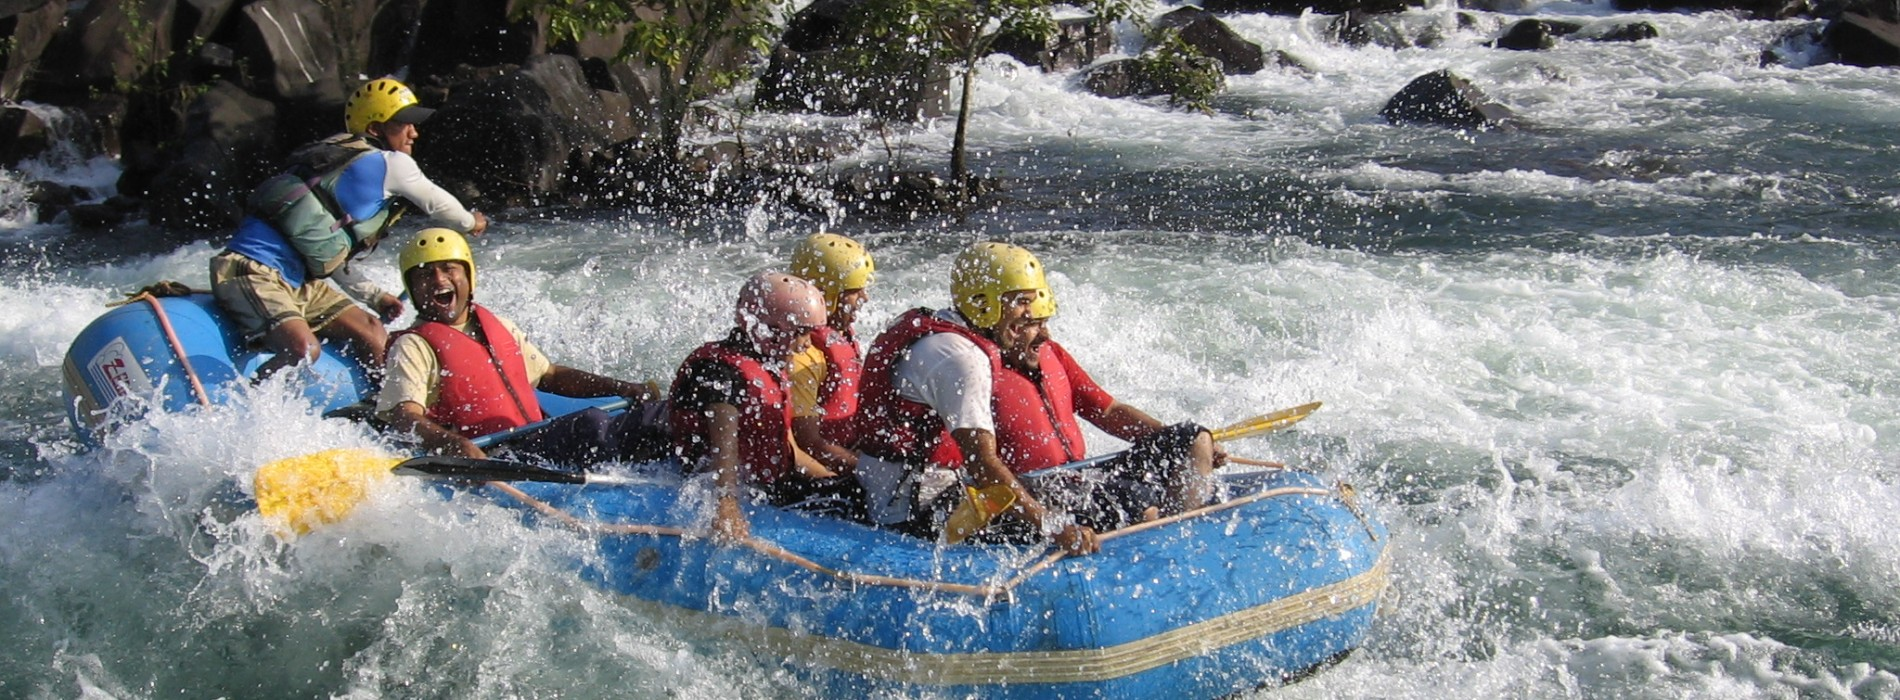 GTDC to offer white water rafting activity from today